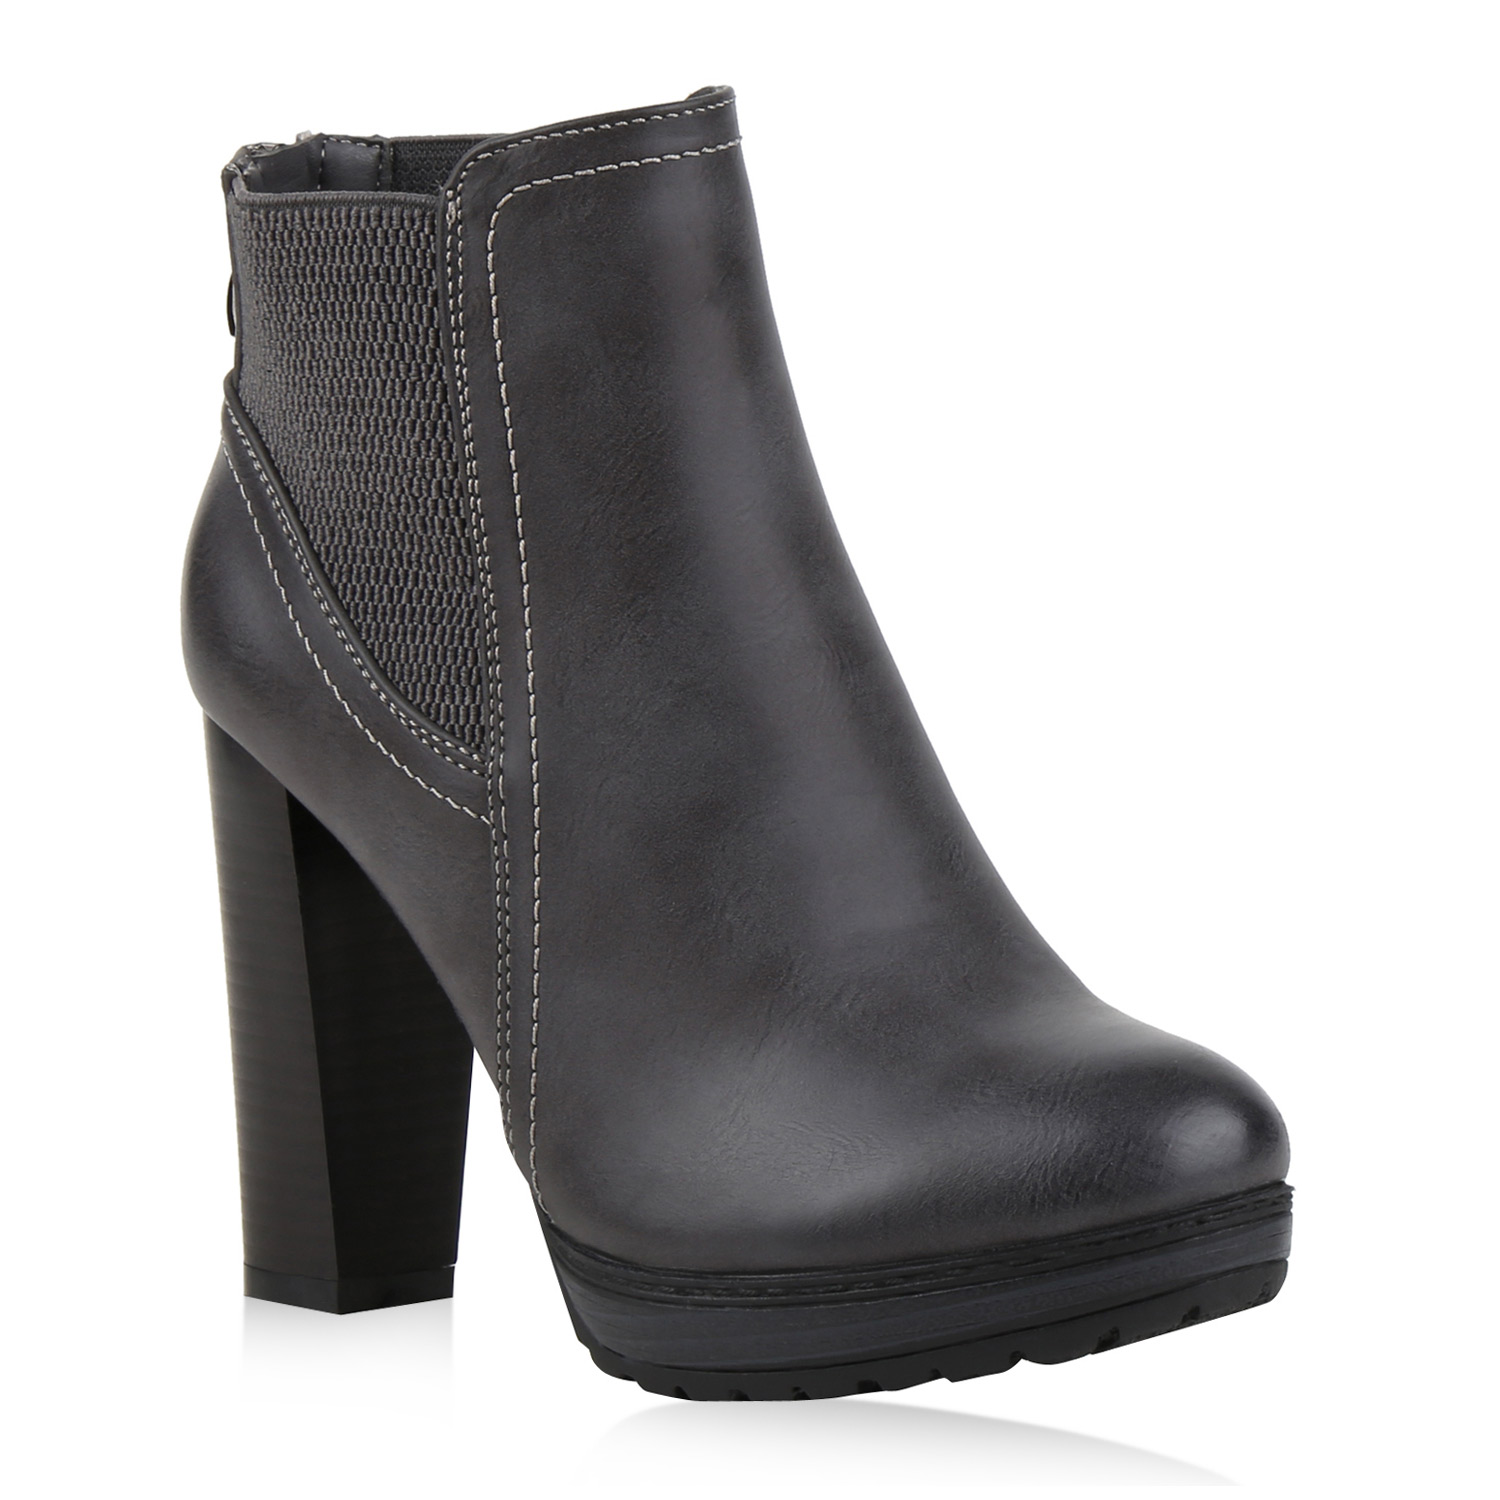 damen ankle boots plateau stiefeletten zipper holzoptikabsatz 78971 schuhe ebay. Black Bedroom Furniture Sets. Home Design Ideas